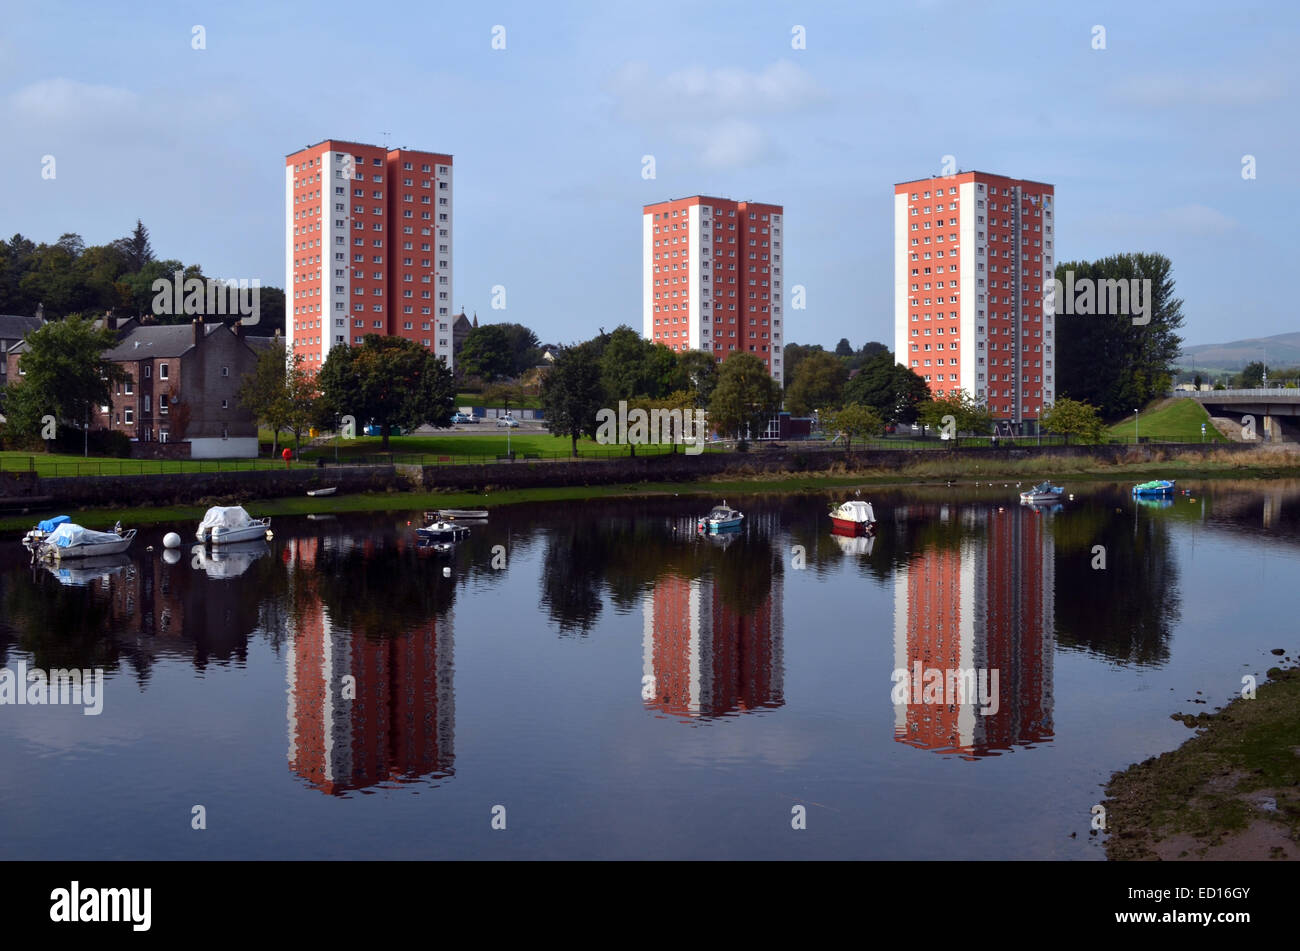 Flats in Dumbarton overlooking the River Leven - Stock Image